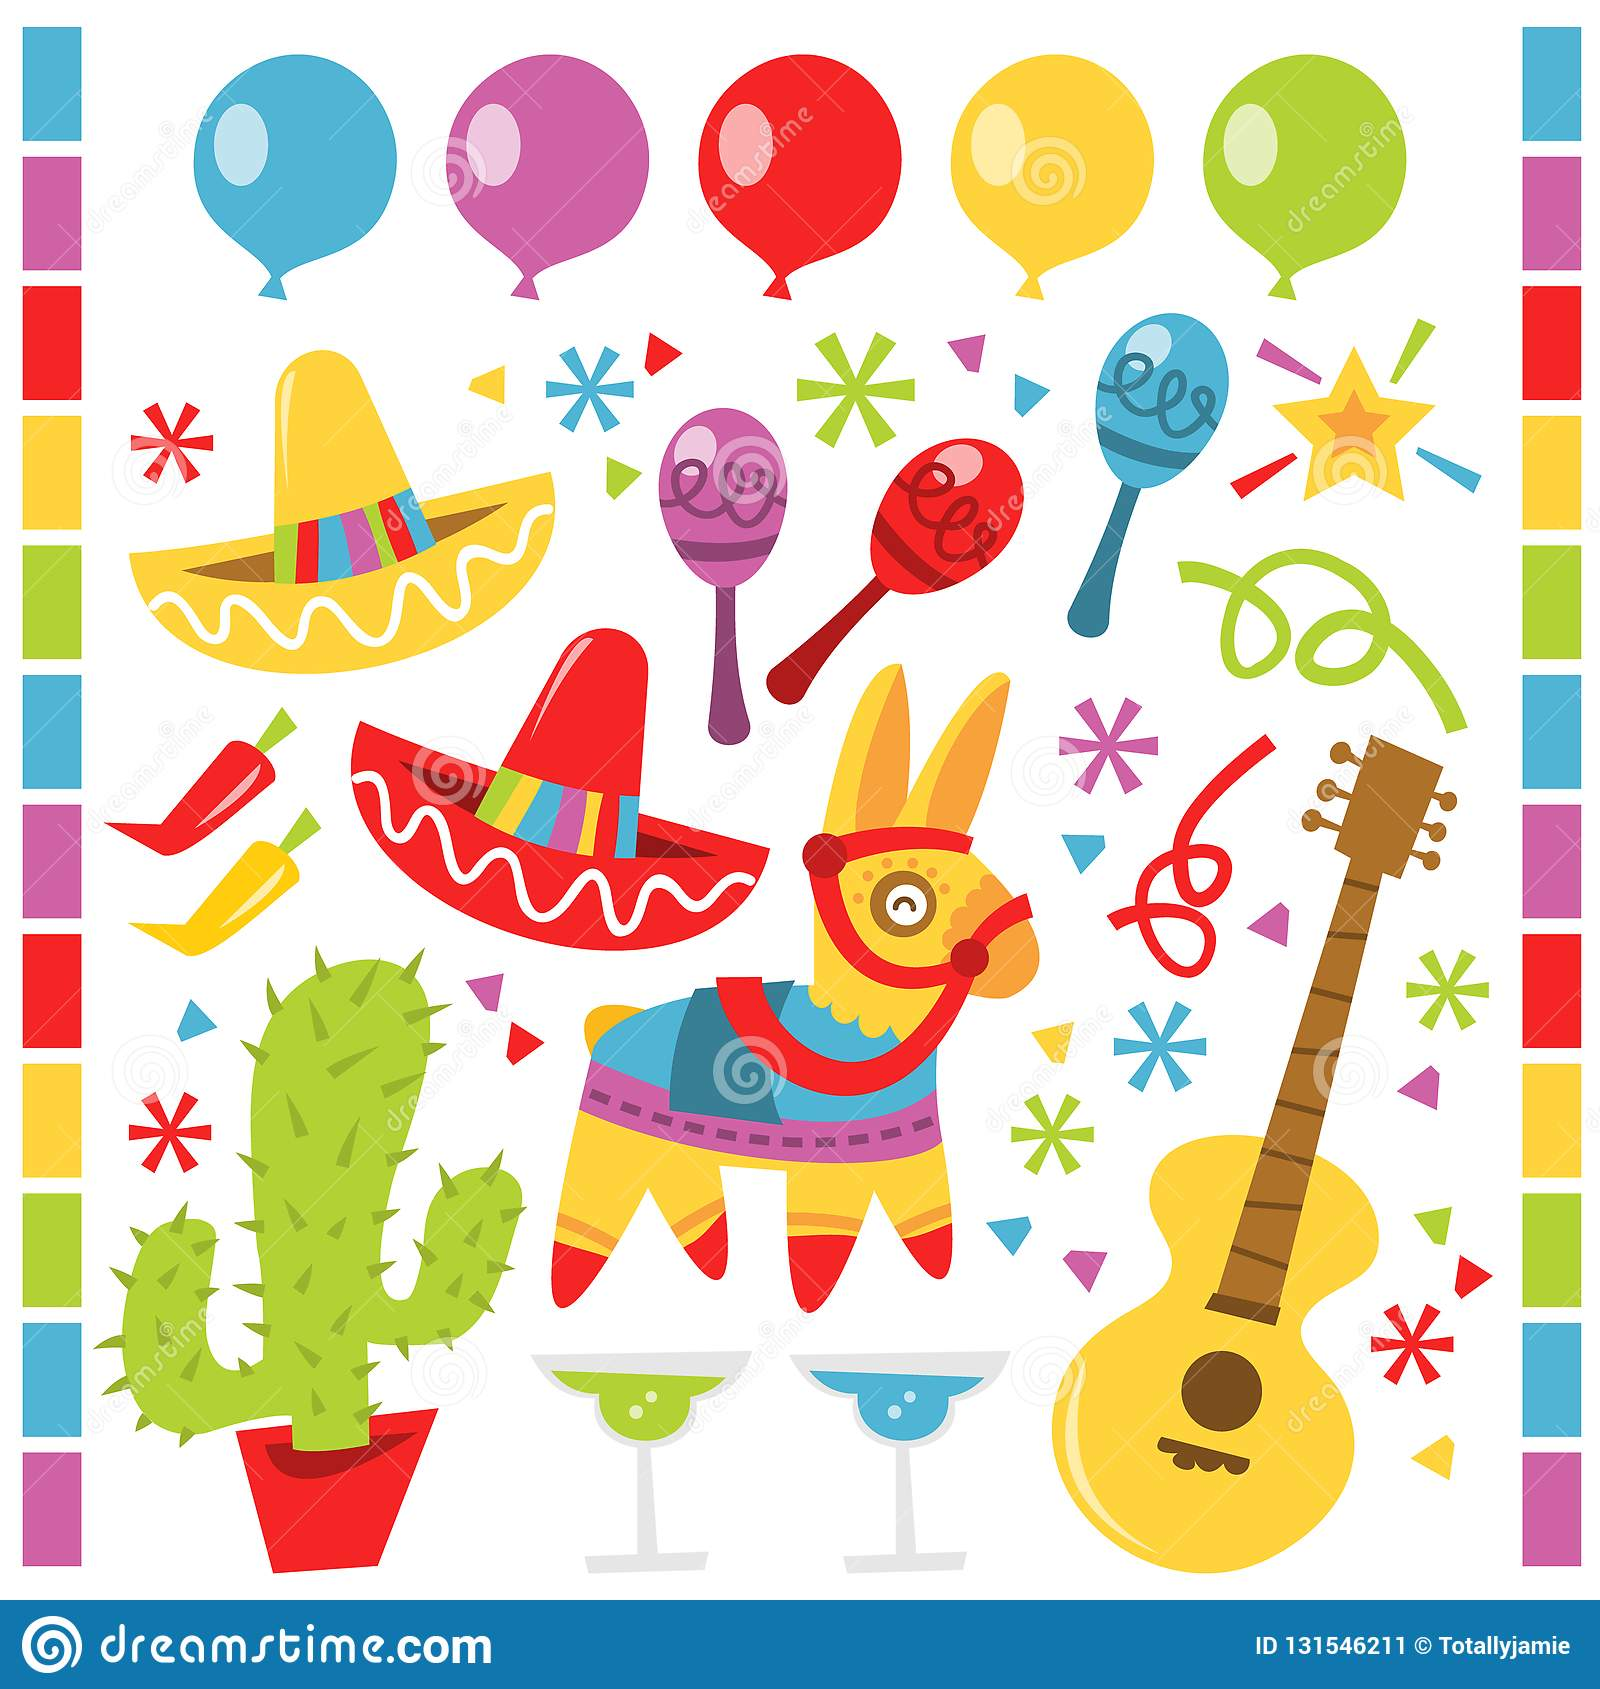 A vector illustration features retro Mexican party design elements against a white background.  There are red and yellow sombrero. Party hats.  There is a stock image